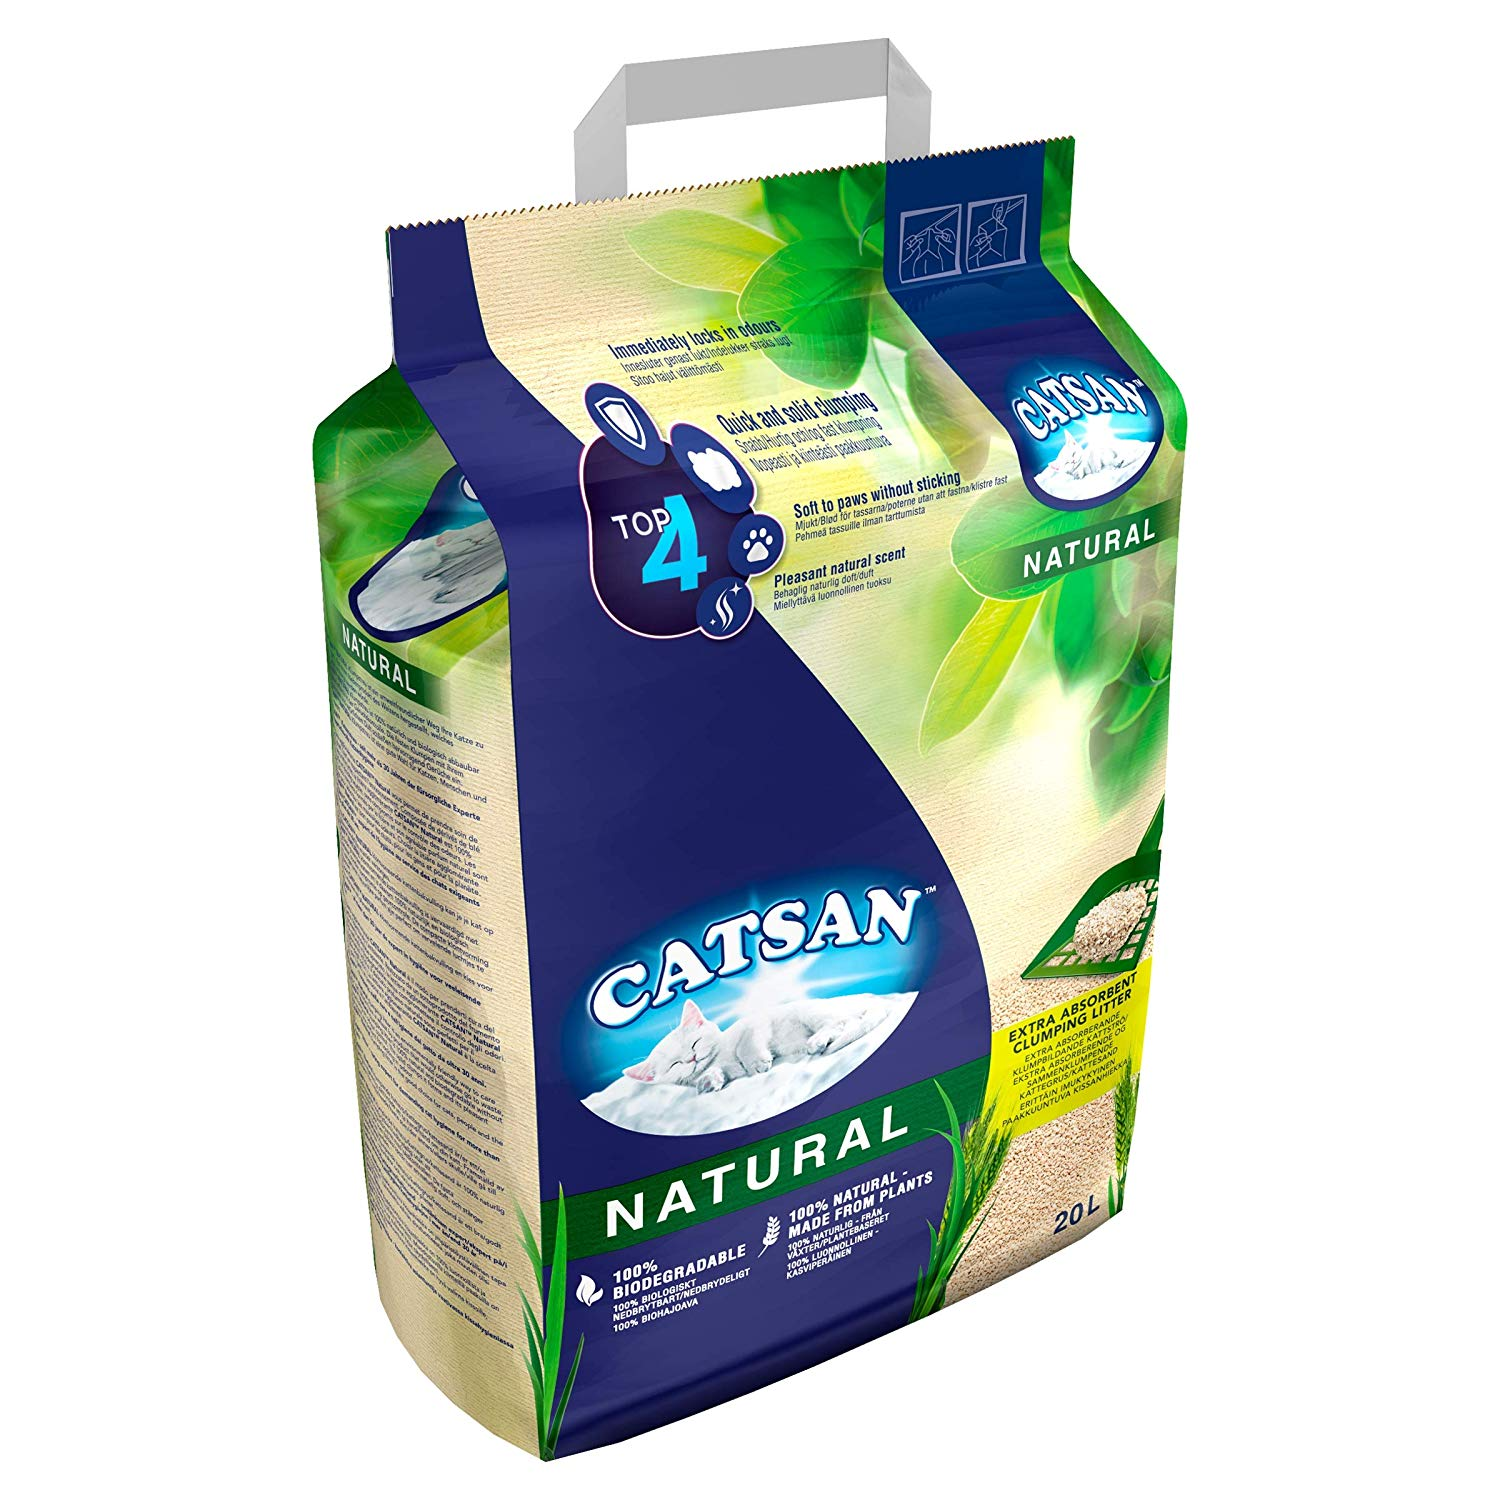 Catsan Natural Biodegradable Clumping Cat Litter, 20 L